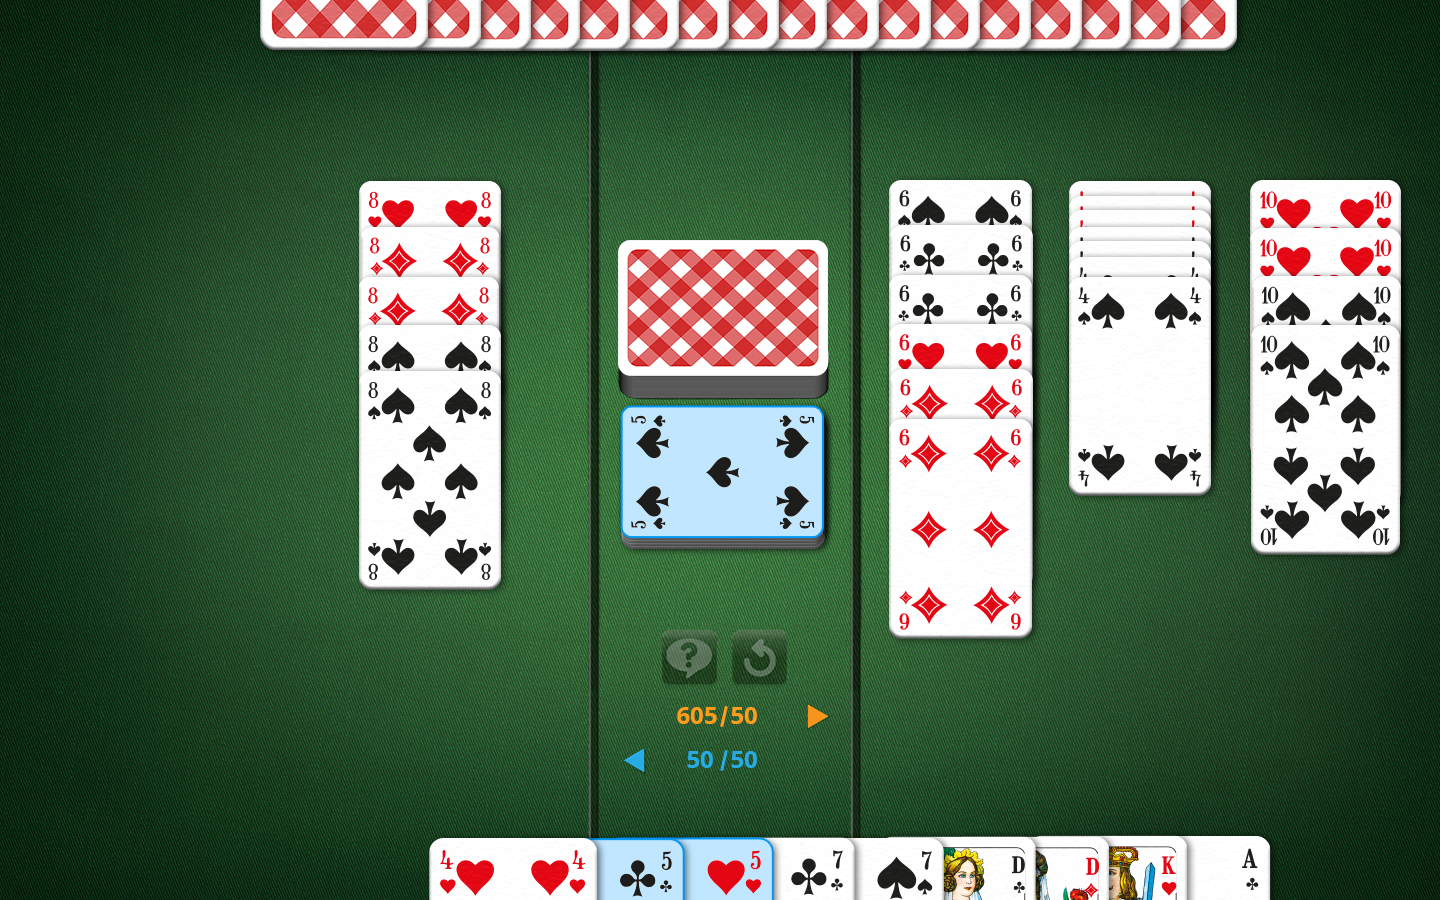 Canasta Playing Field: Picking up the Discard Pile Is an Option.